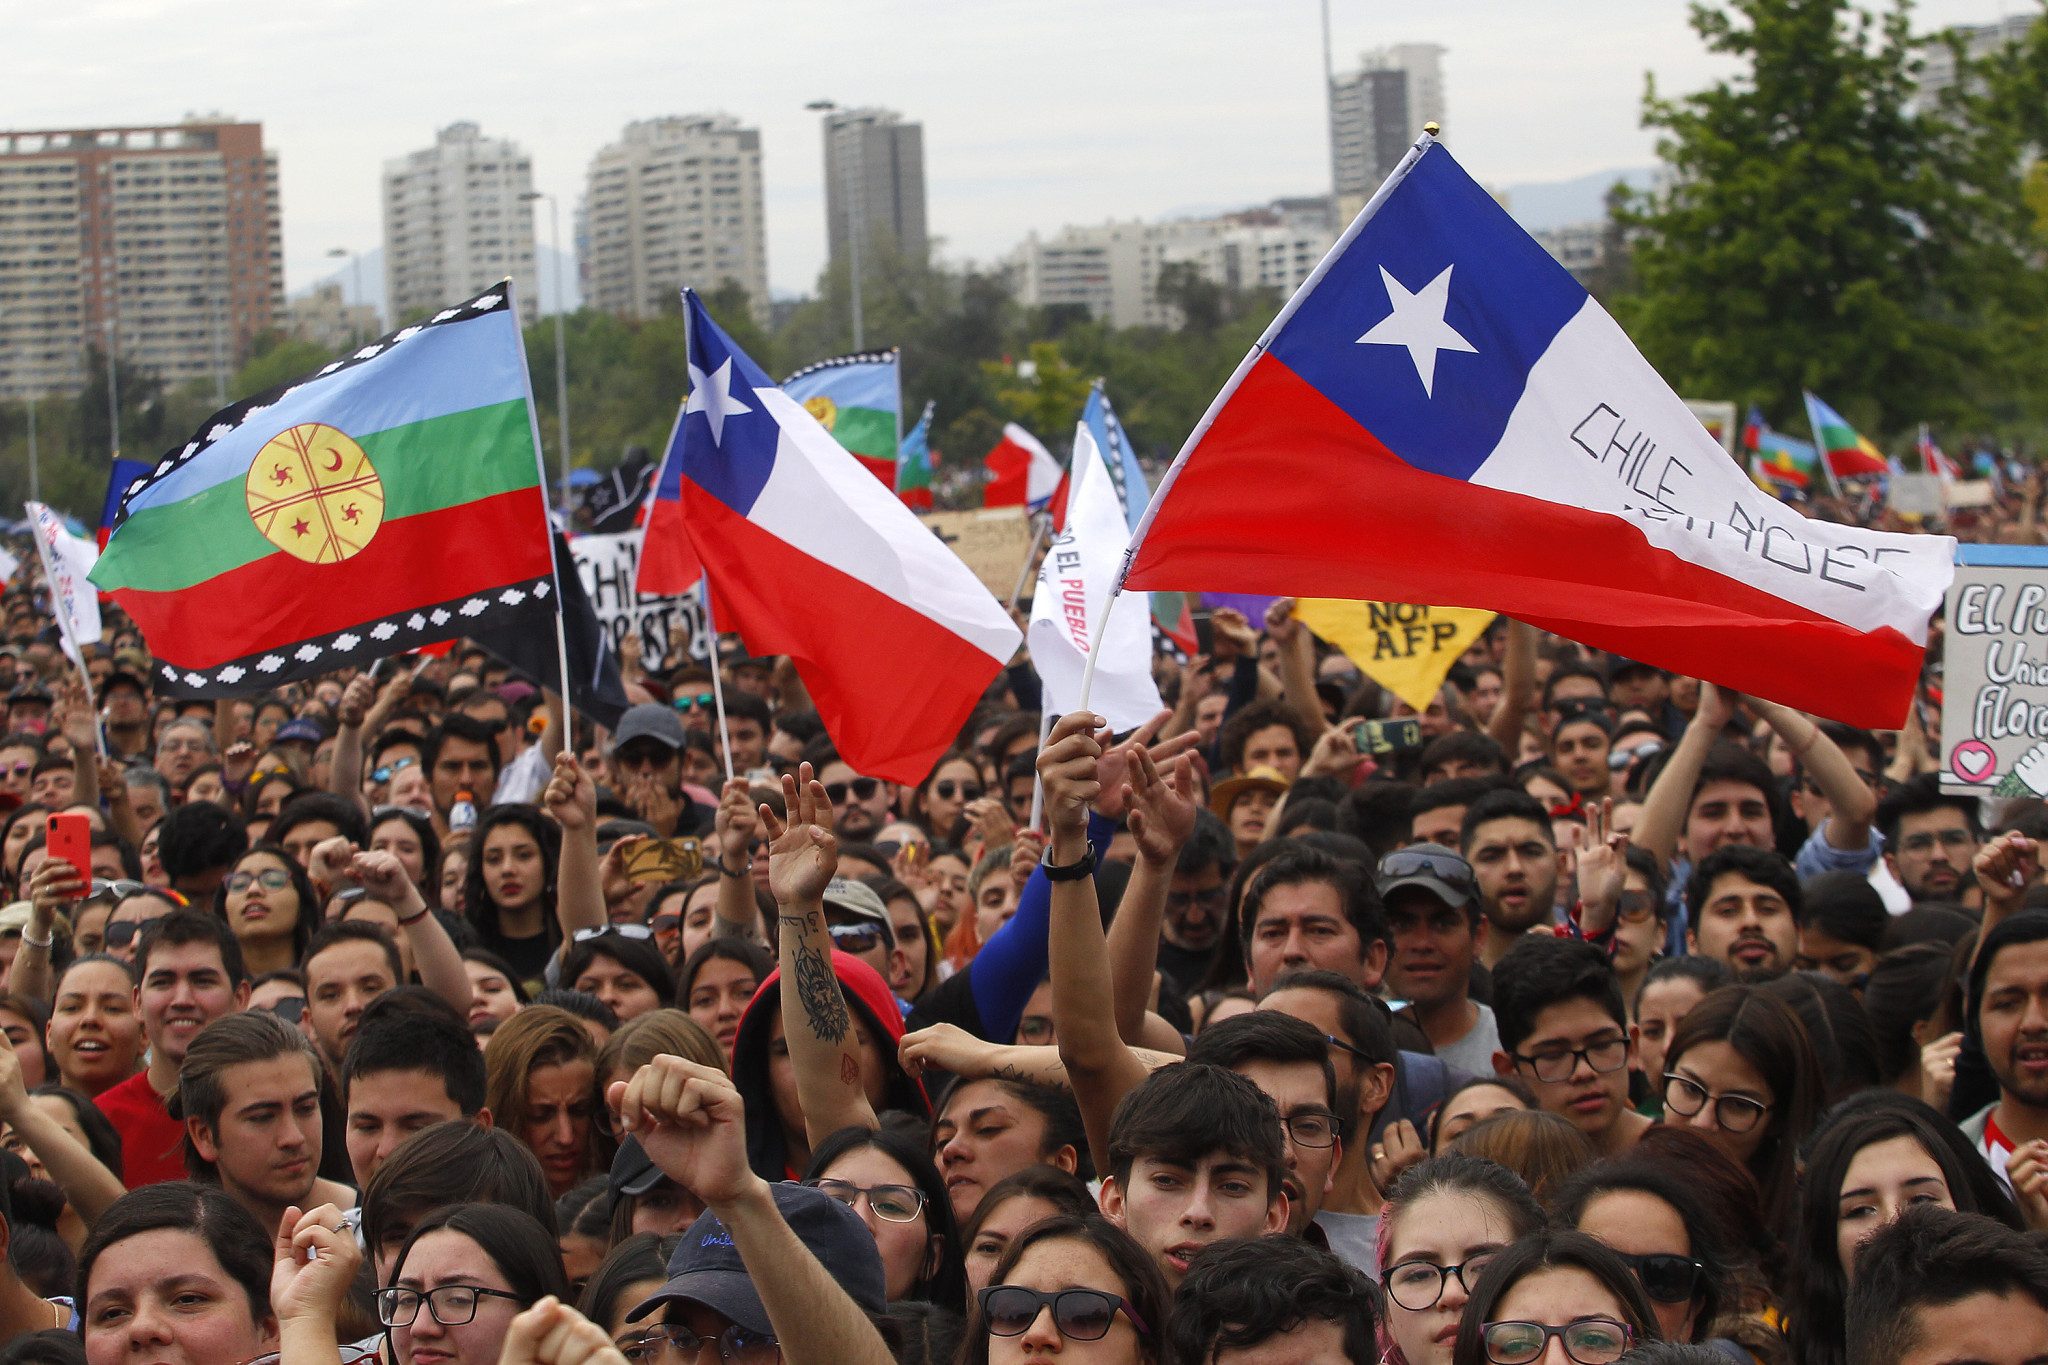 Chile's Olympic Committee calls for dialogue to solve crisis and put an end to mass protests